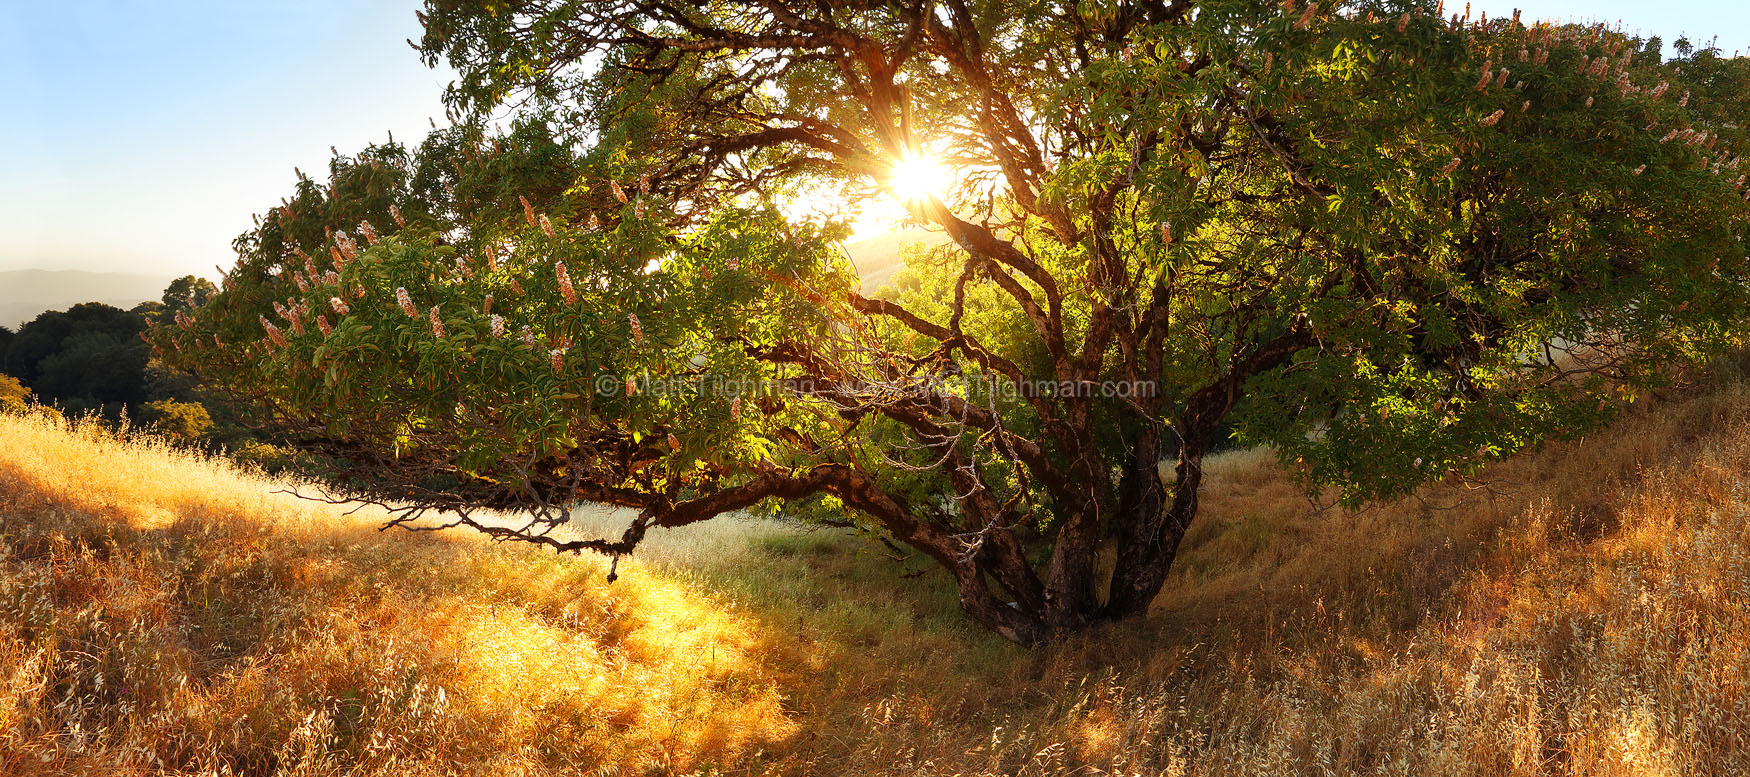 Fine art stock photograph of a stunning California Buckeye specimen in late afternoon. Taken in summer in the Santa Cruz Mountains, near Russian Ridge.